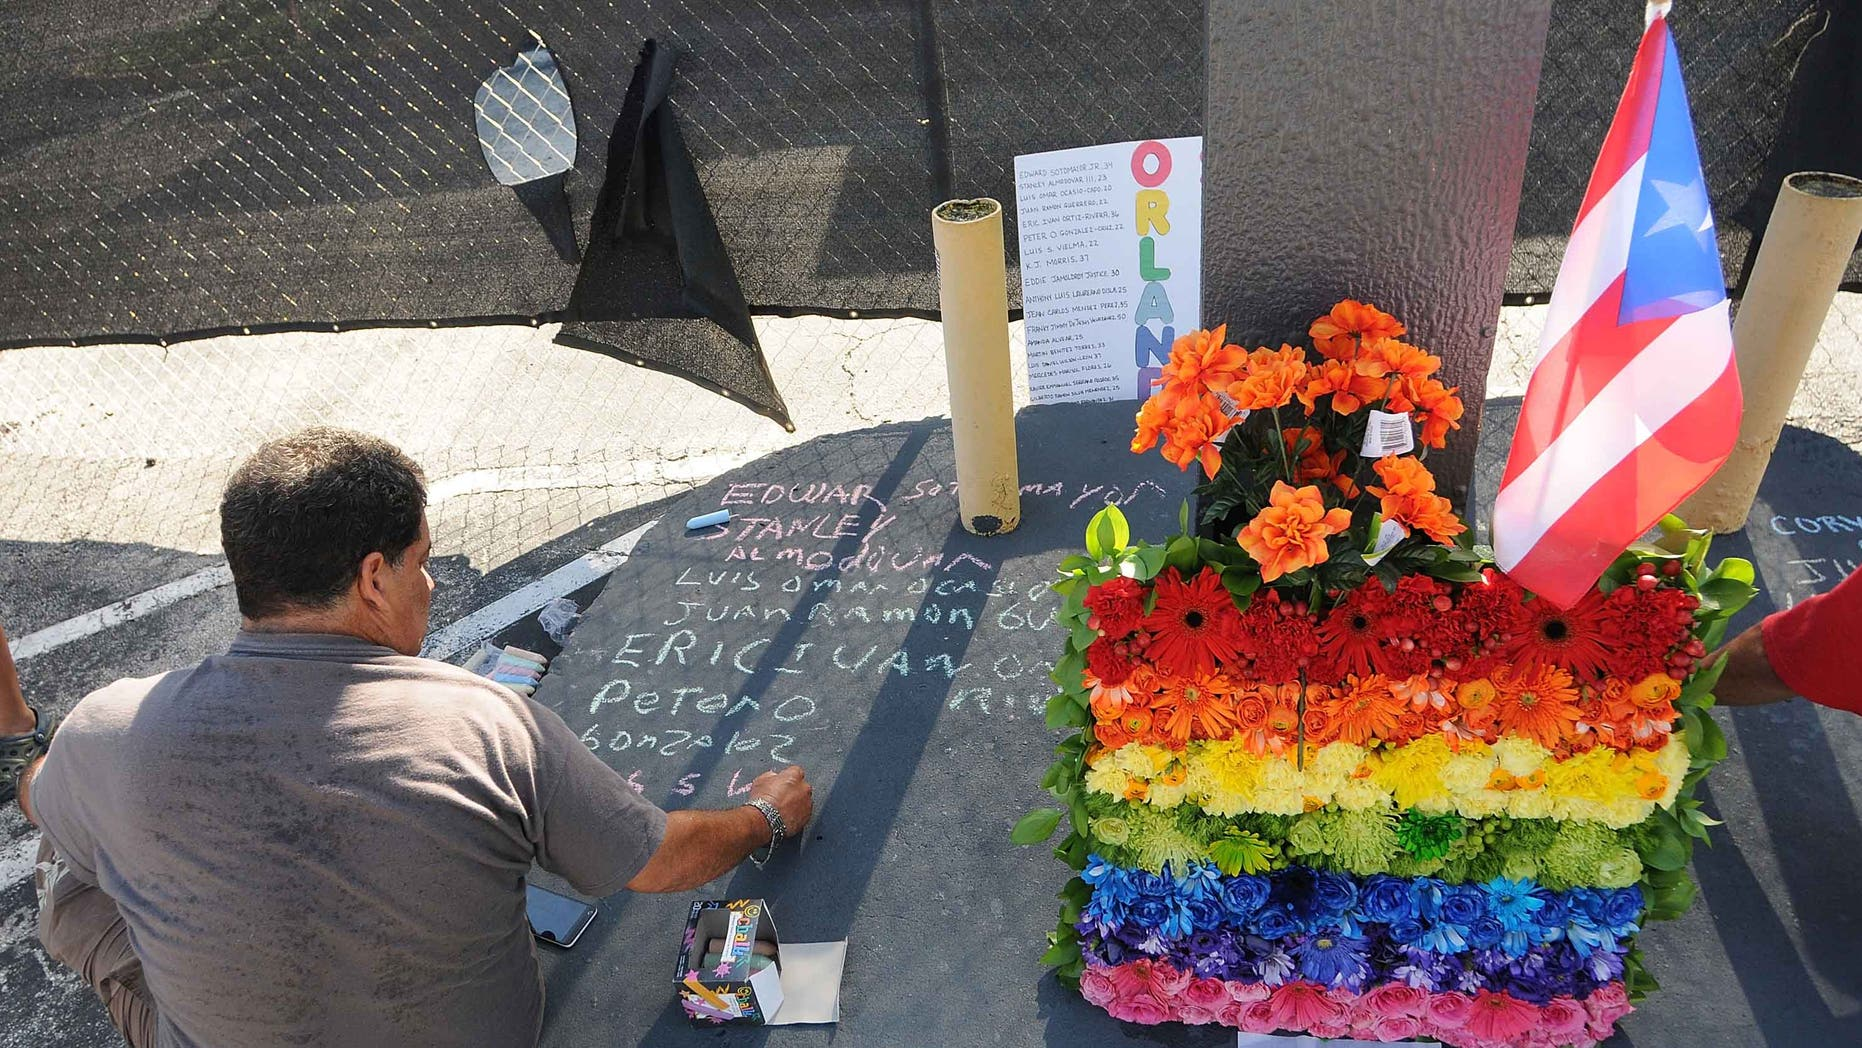 Jose Colon pays his respects for the victims of the Pulse Nightclub shooting.